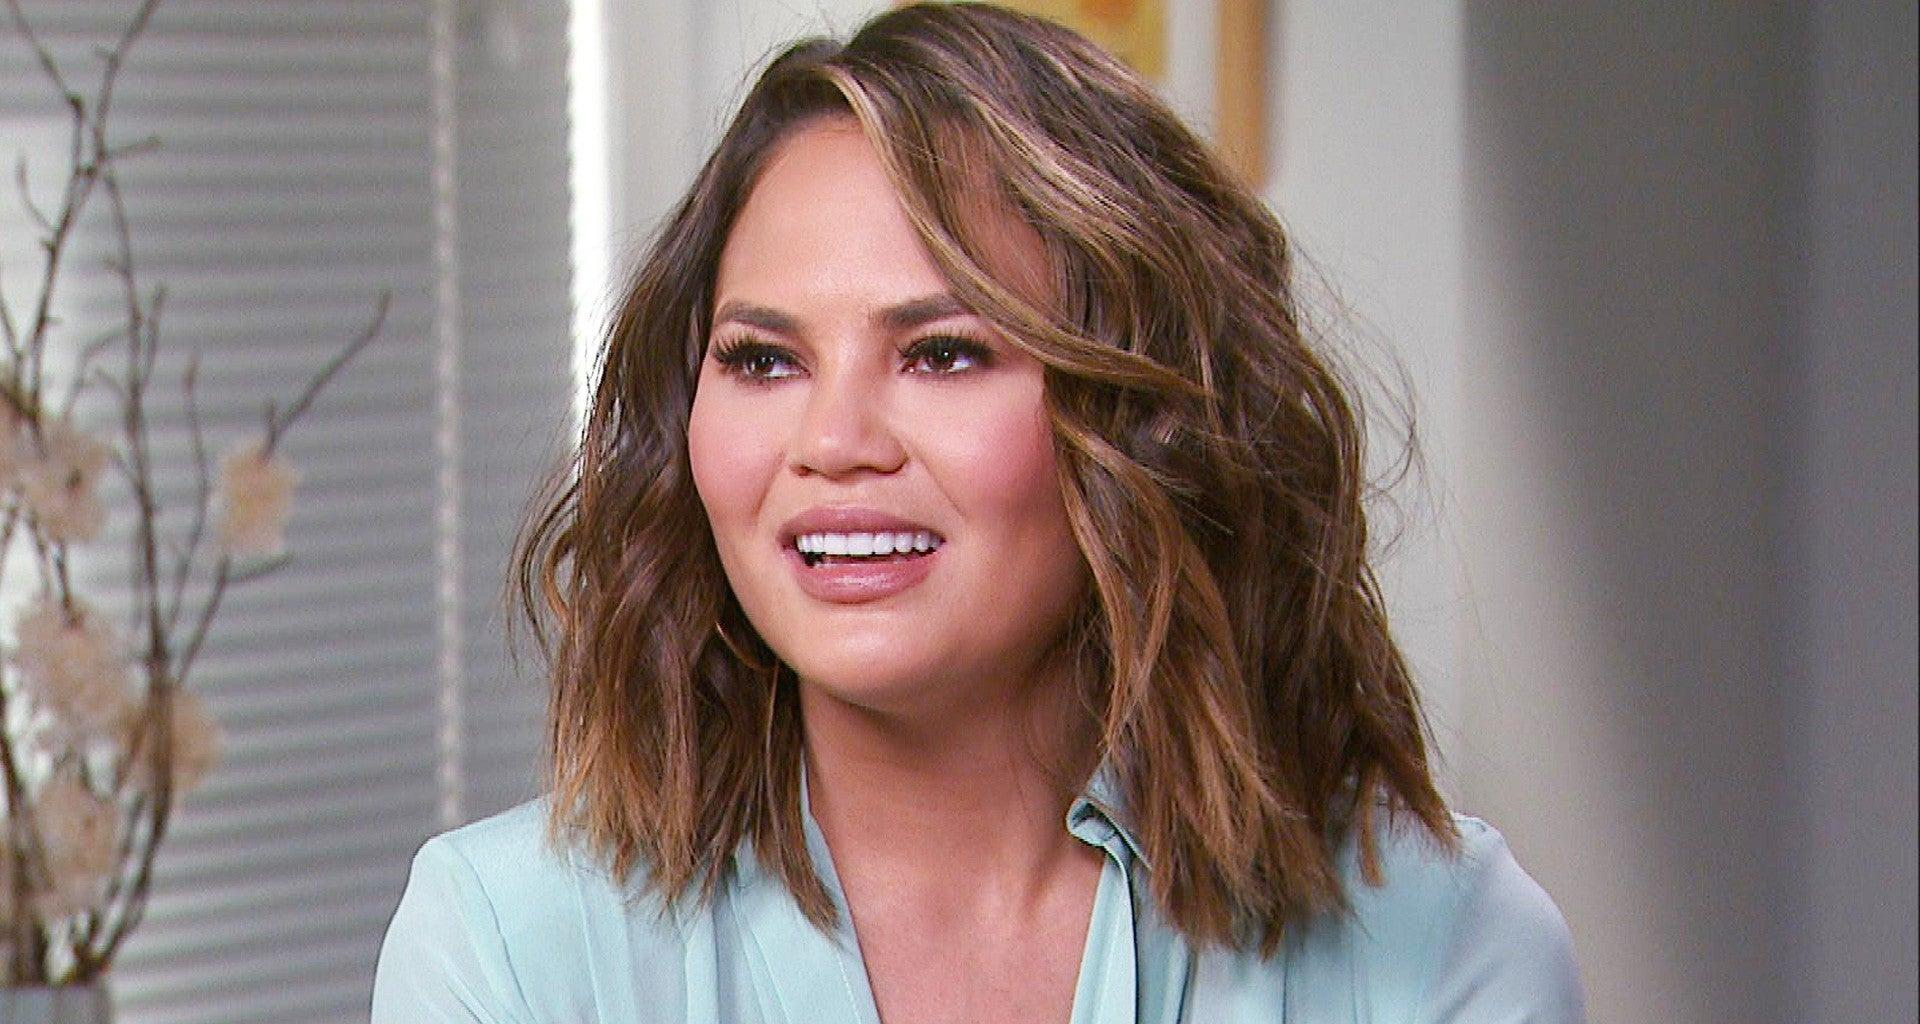 Chrissy Teigen Says She'll Be Back To The Plastic Surgeon To Make Her Chest Even Smaller After Removing Her Implants!